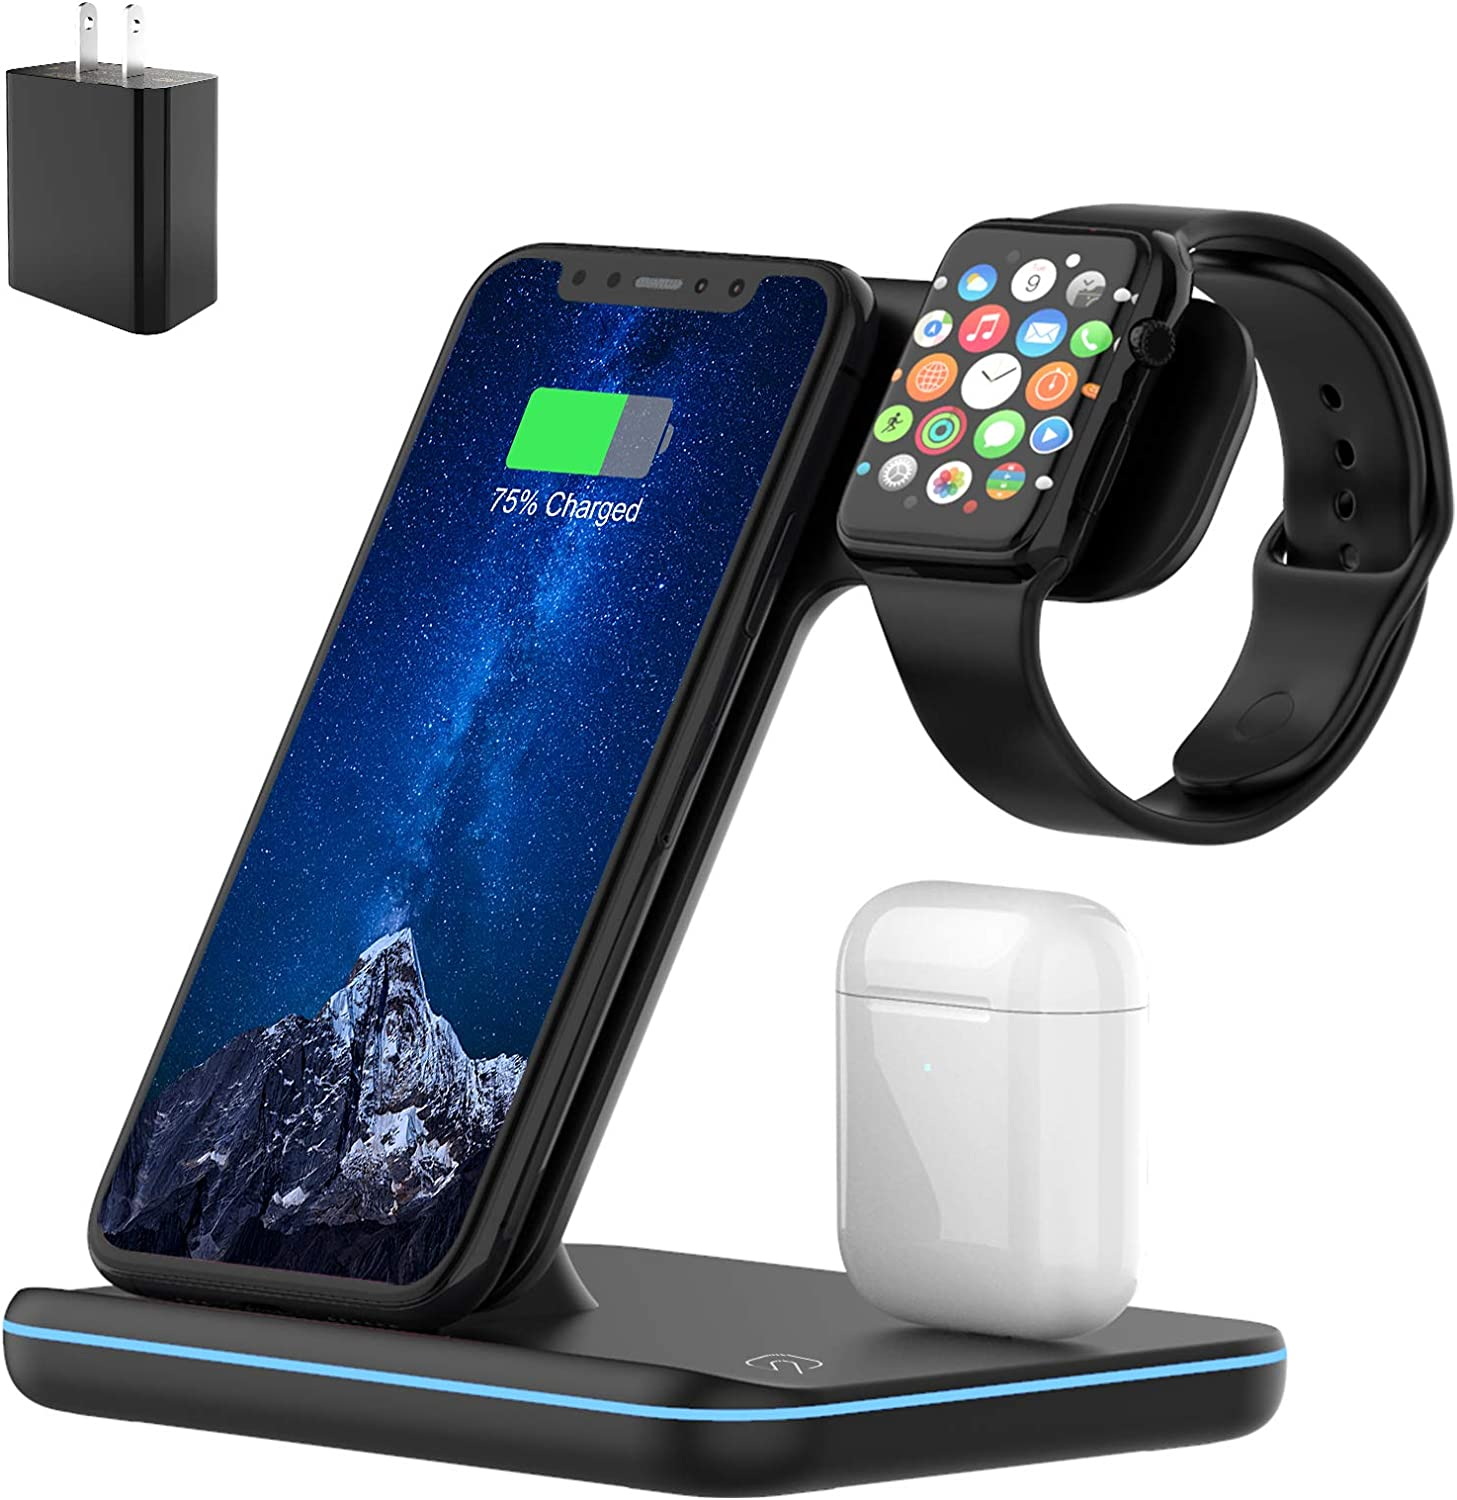 Wireless Charger, 3 in 1 Qi-Certified 15W Fast Charging Station for Apple iWatch Series 6/5/4/3/2/1,AirPods,Wireless Charging Stand for iPhone 12/11 Series/XS MAX/XR/XS/X/8/8 Plus/Samsung